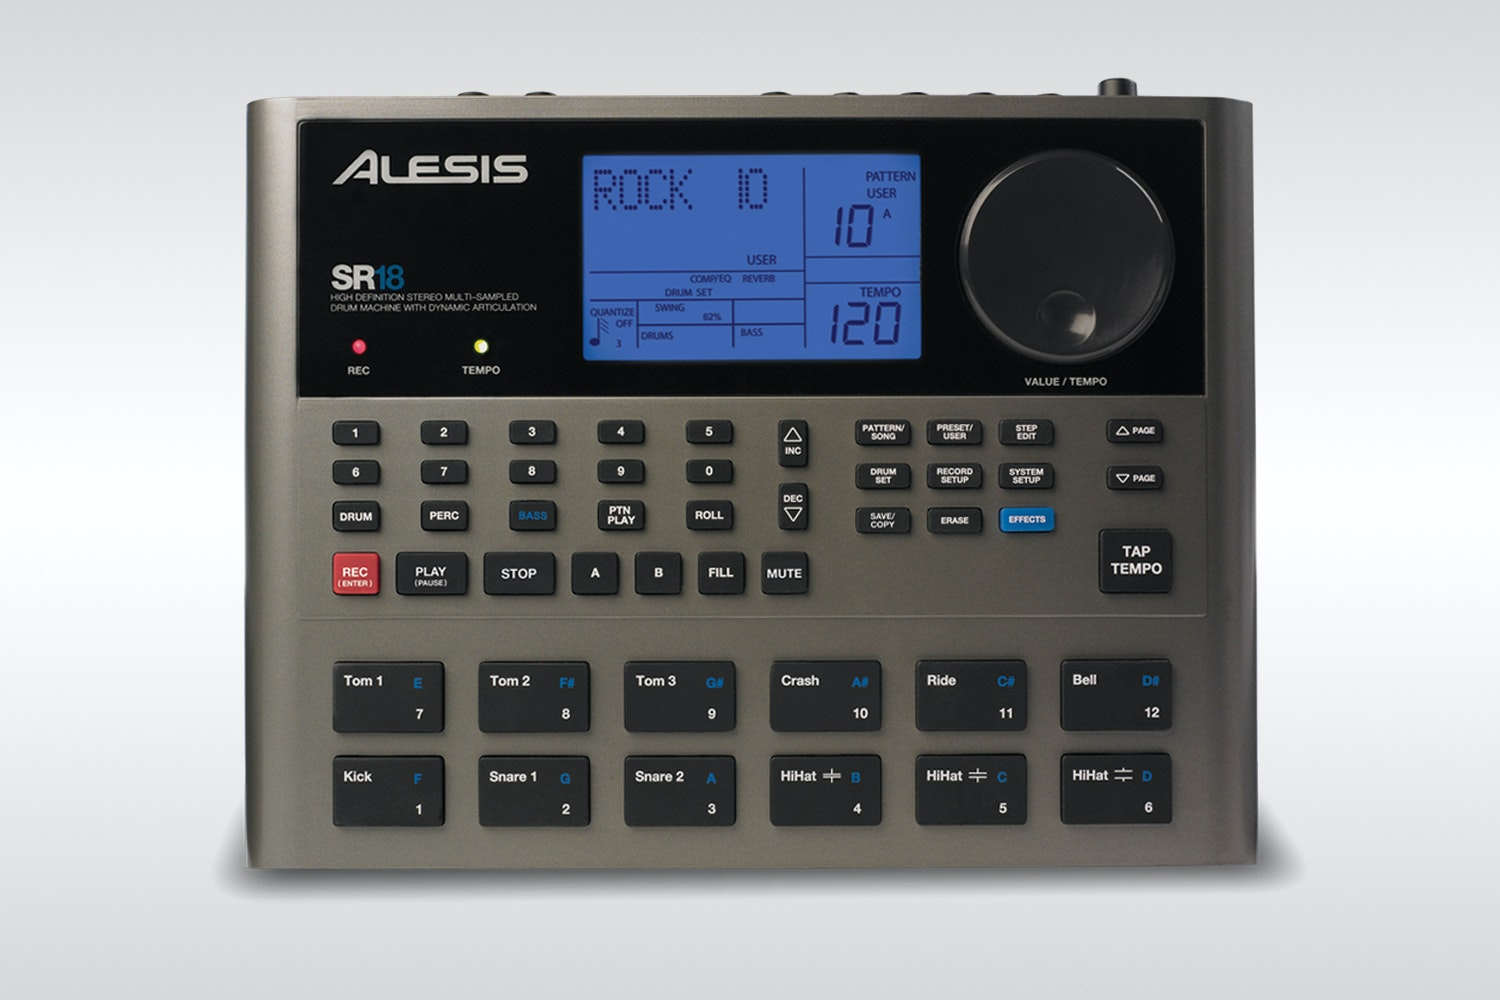 Alesis SR16/SR18 Drum Machines